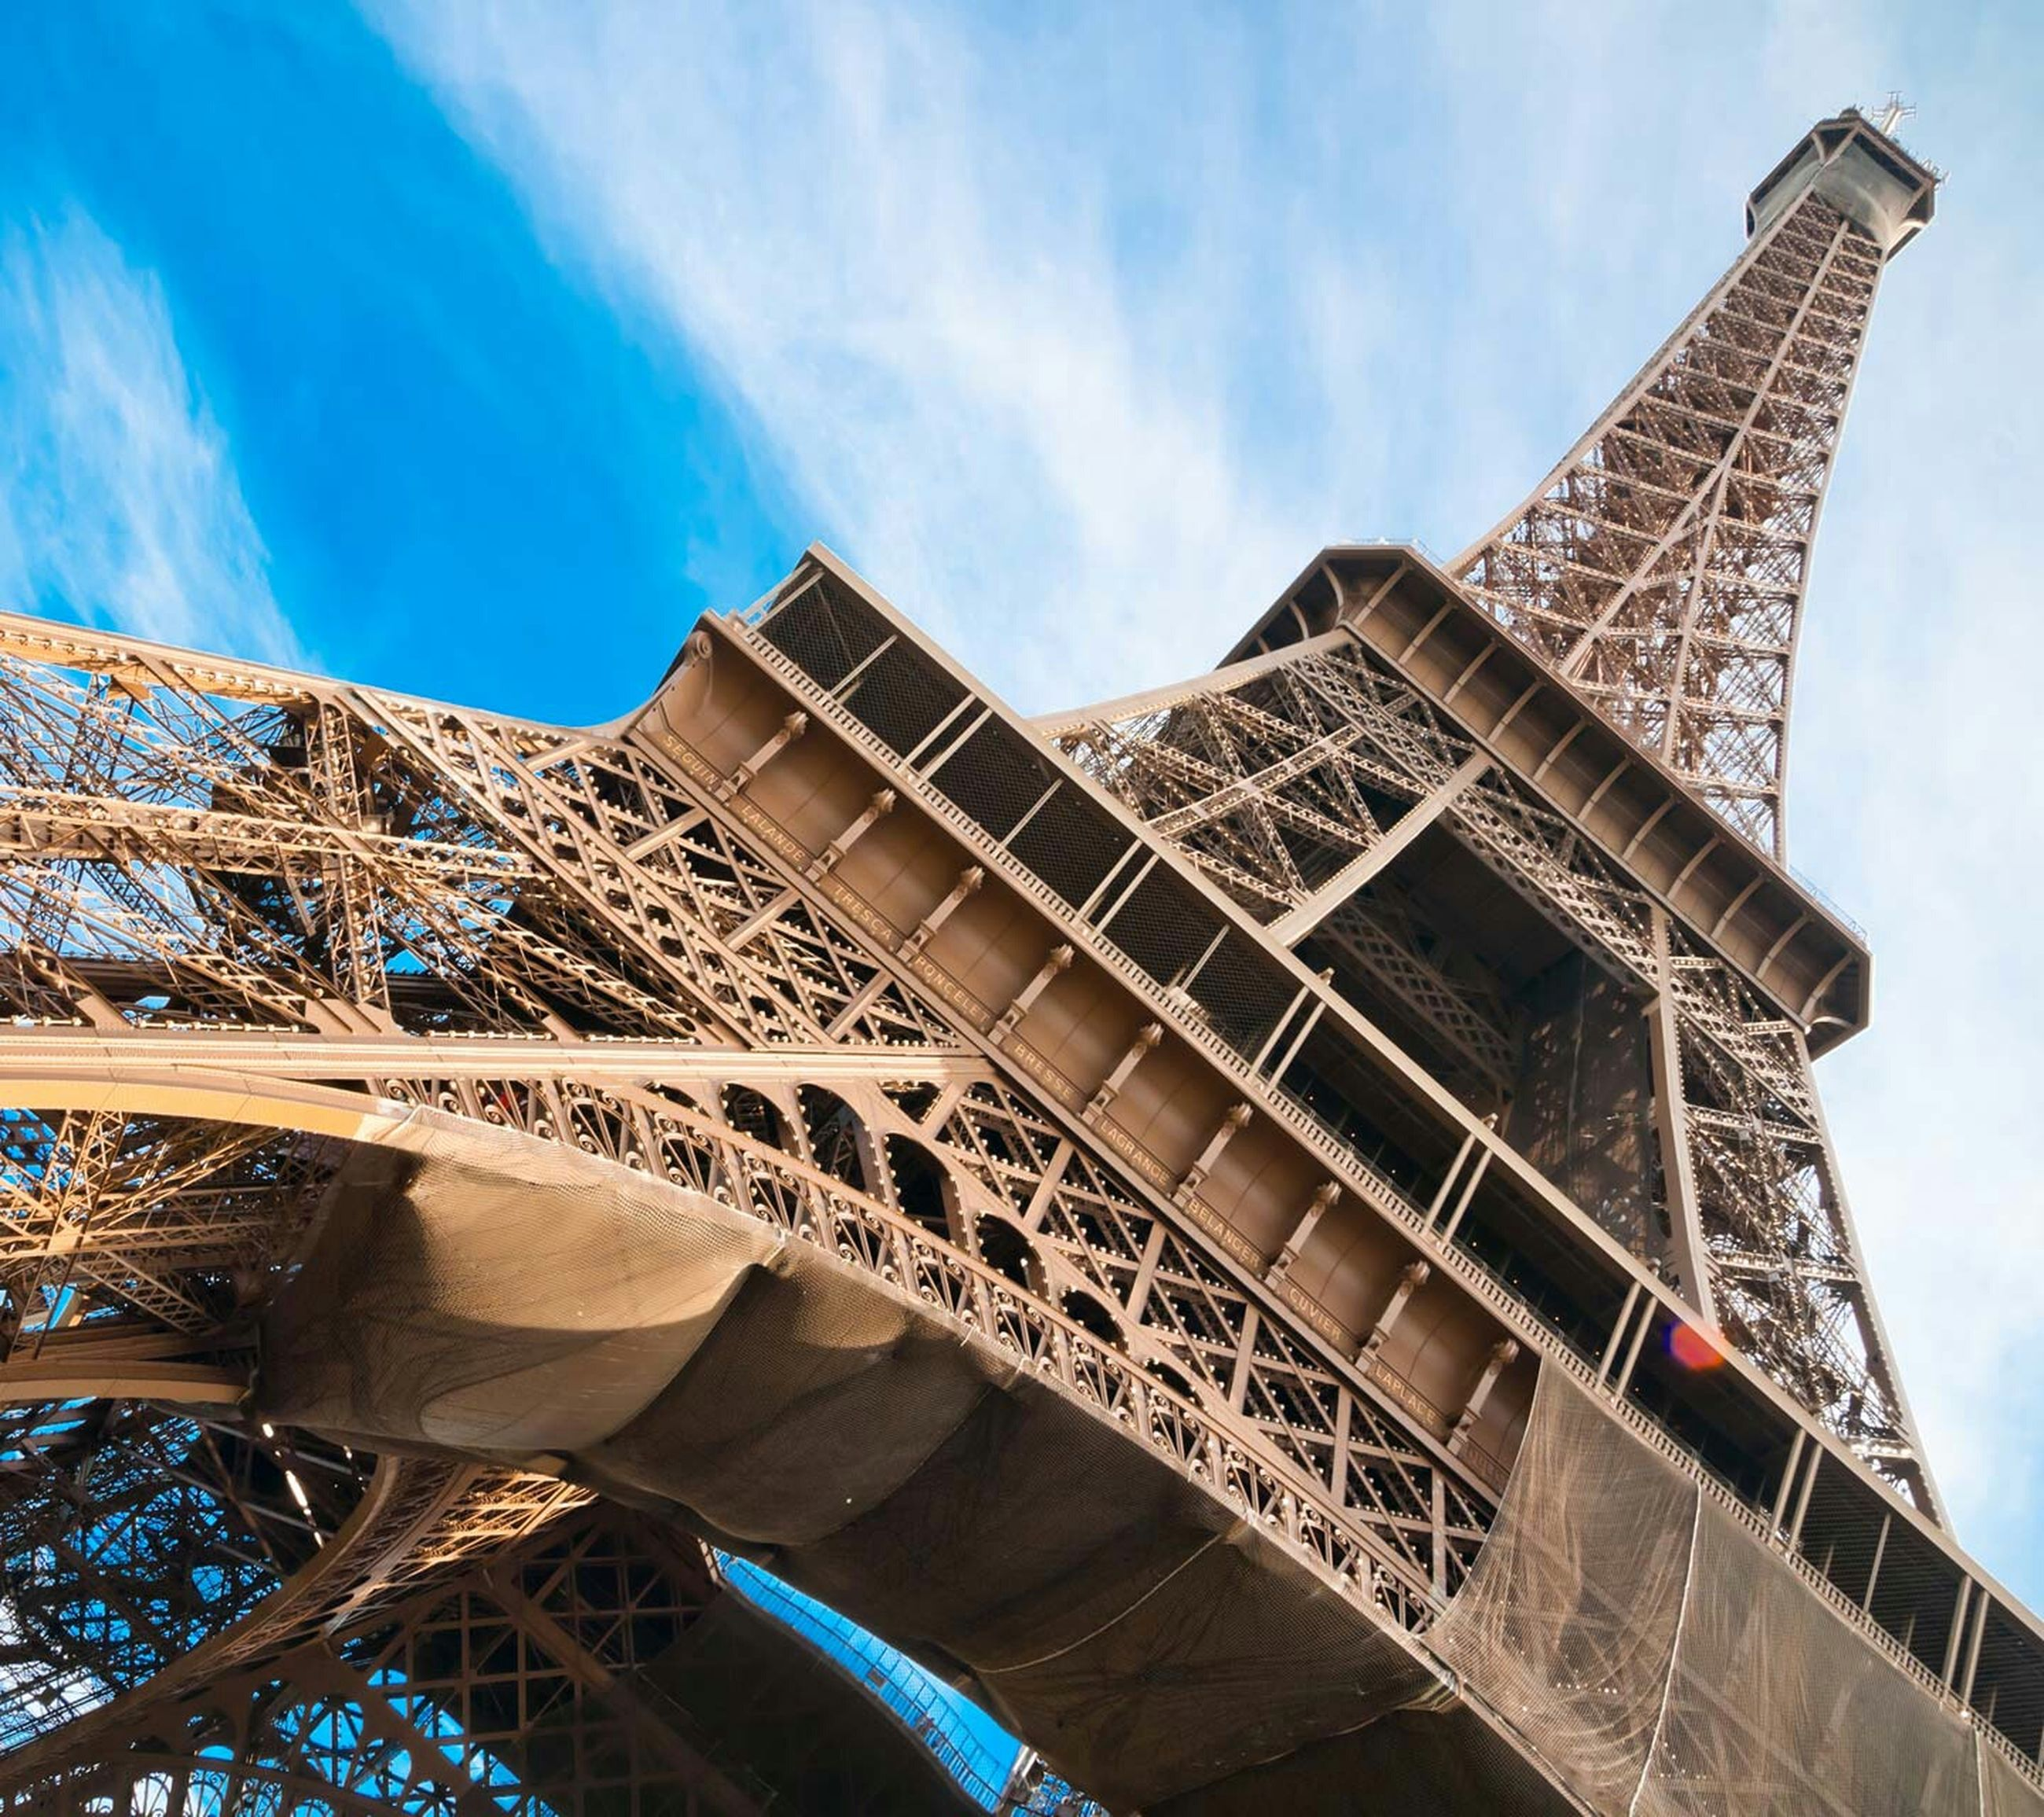 architecture, built structure, low angle view, building exterior, famous place, international landmark, tower, travel destinations, capital cities, tall - high, tourism, sky, travel, city, eiffel tower, culture, architectural feature, modern, cloud - sky, history